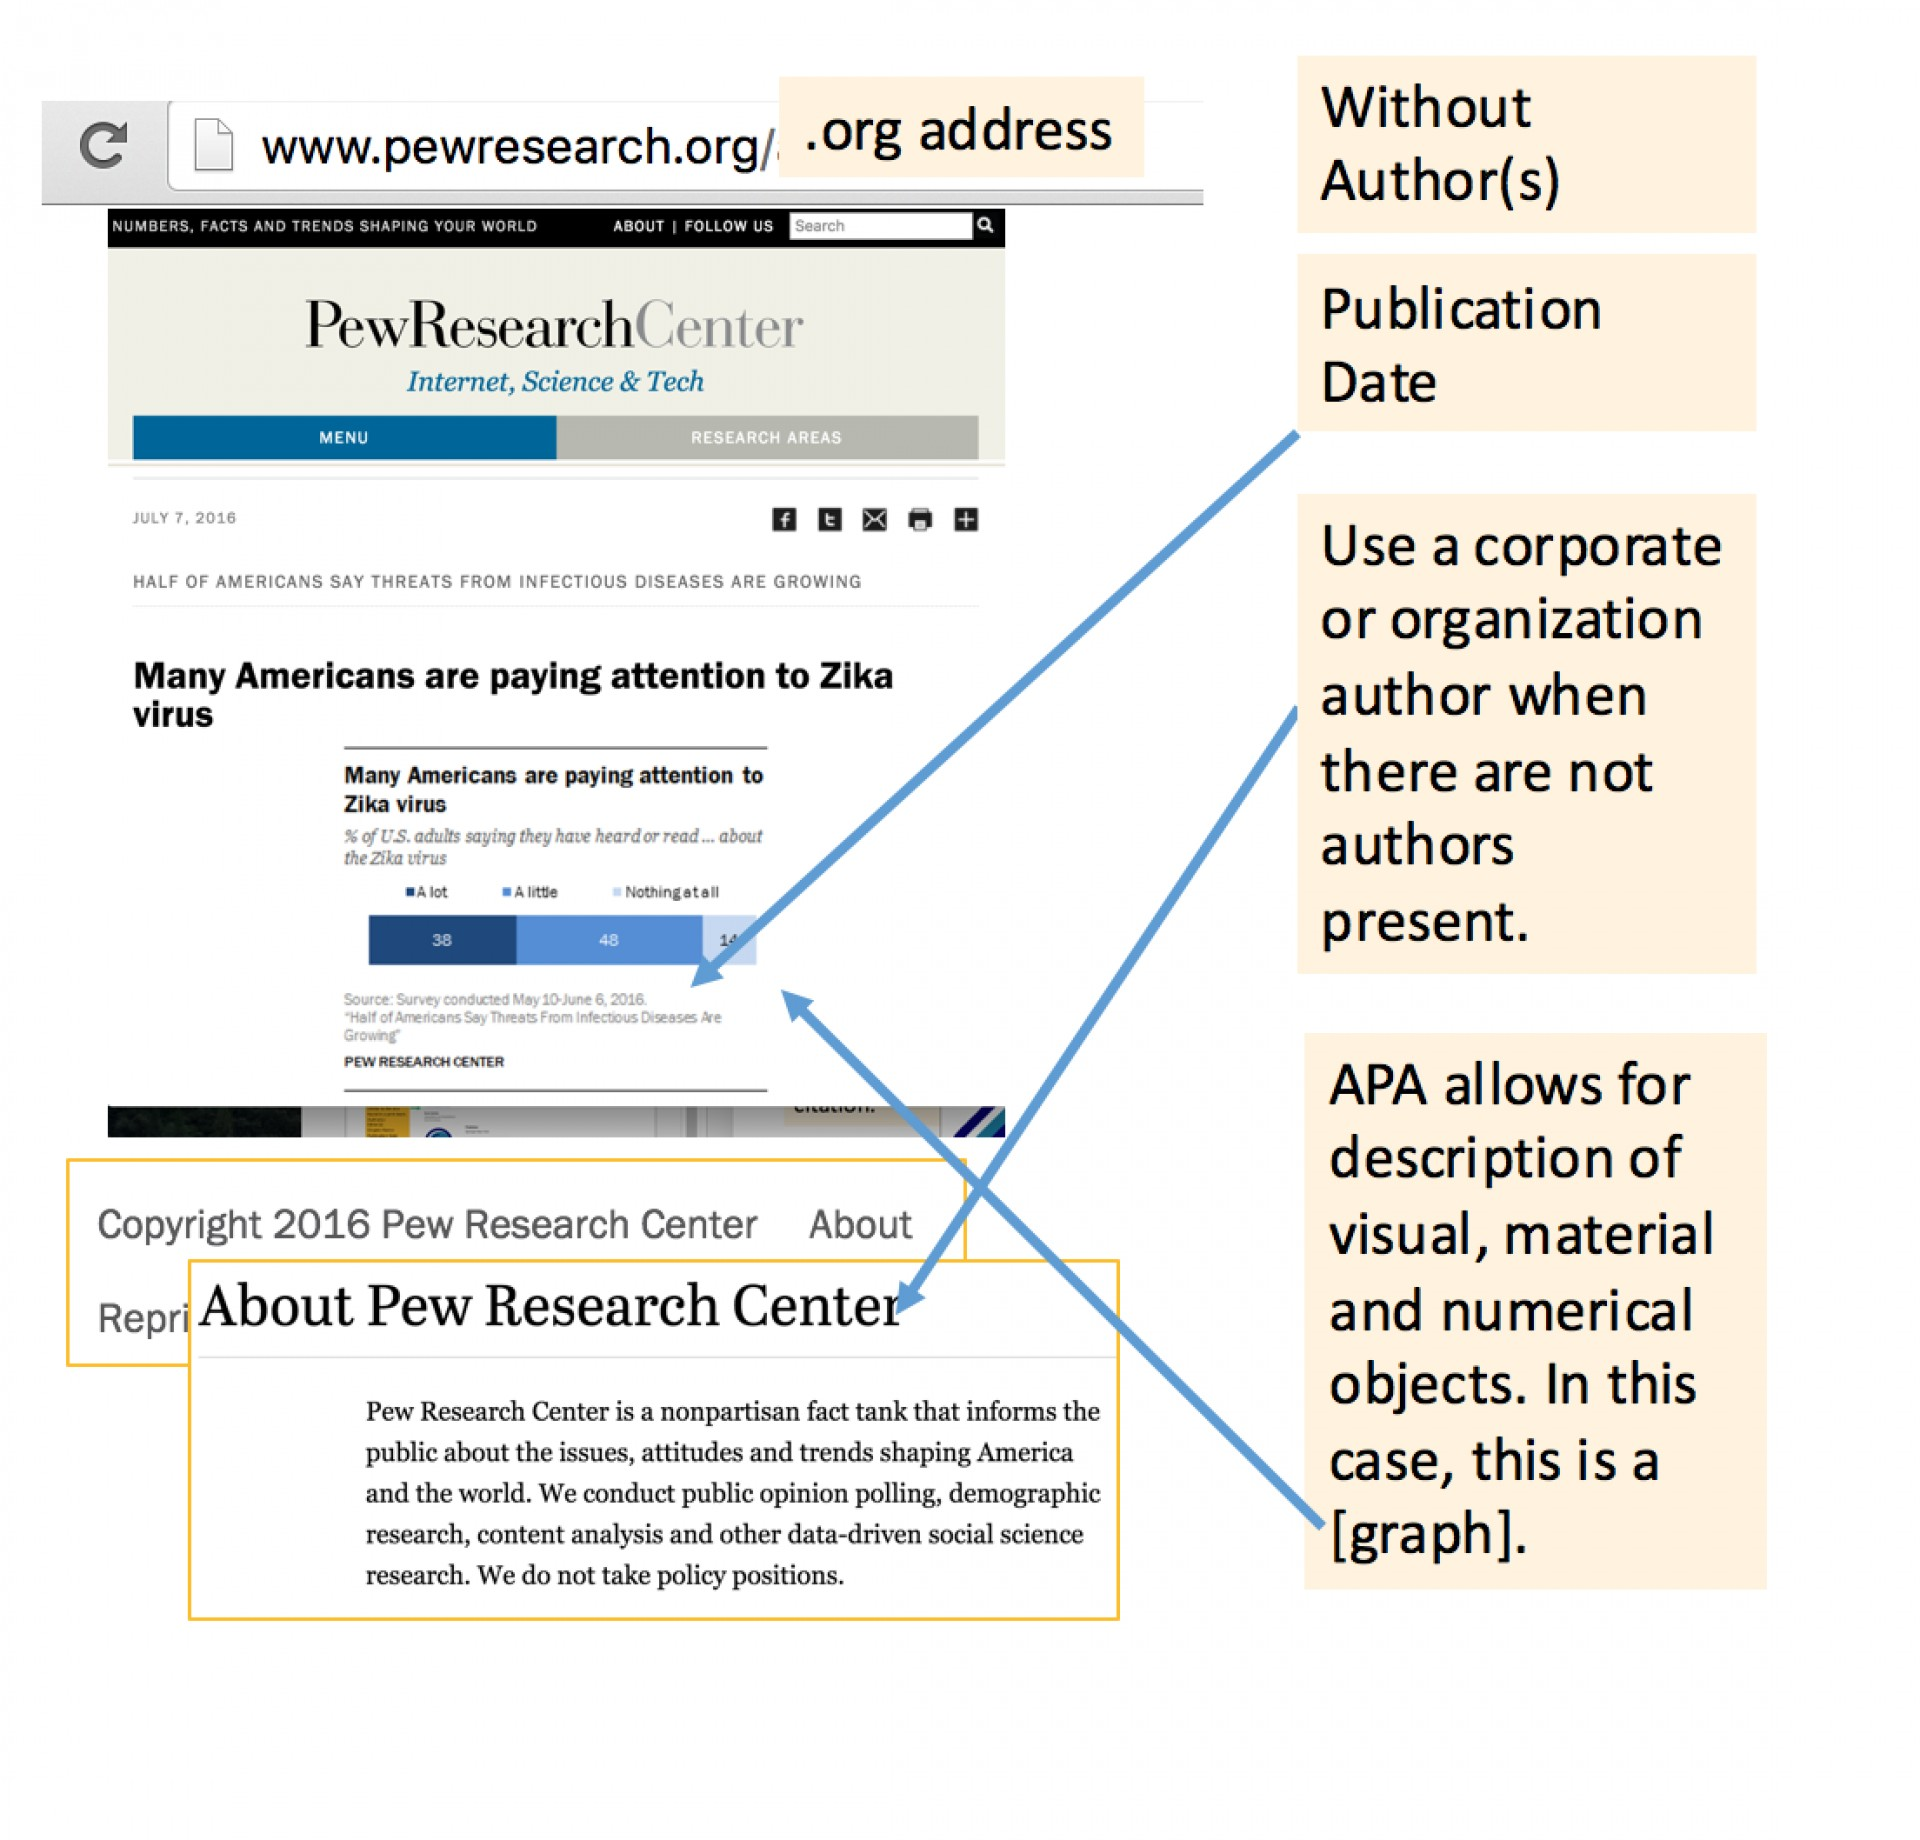 020 Research Paper Screen Shot 2016 26 At 3 39 Pm How To Make Citations In Unusual A Apa 1920